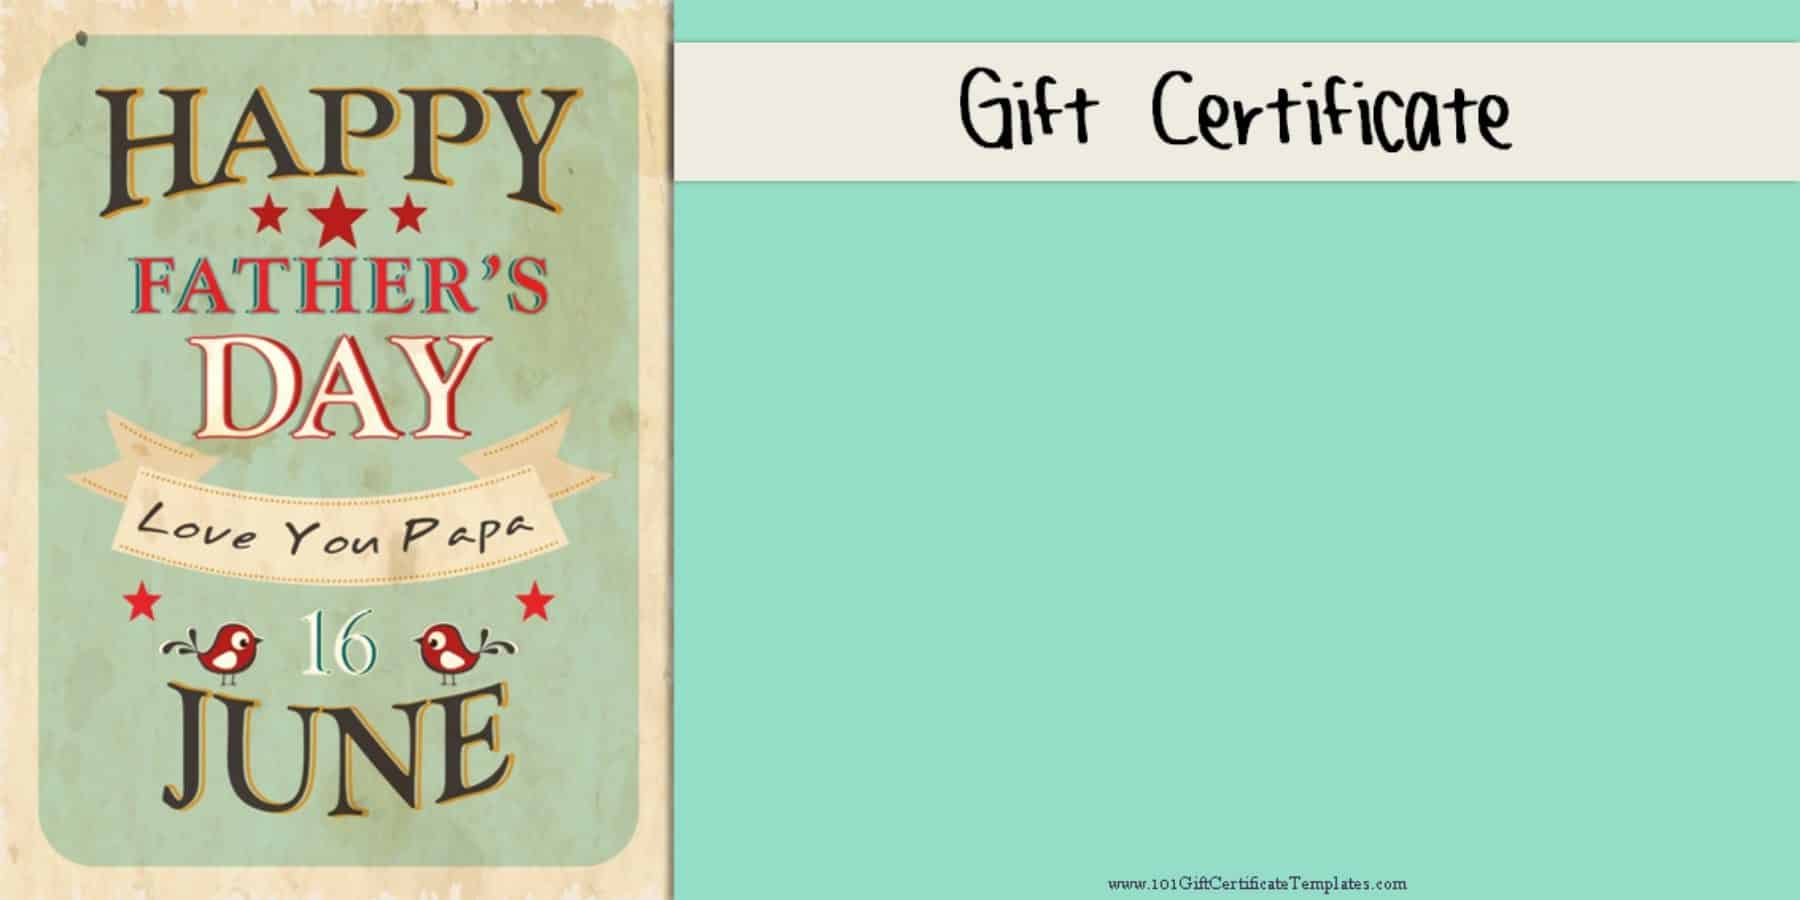 online gift certificate template all file resume sample online gift certificate template gift certificate template customizable father s day gift certificate templates